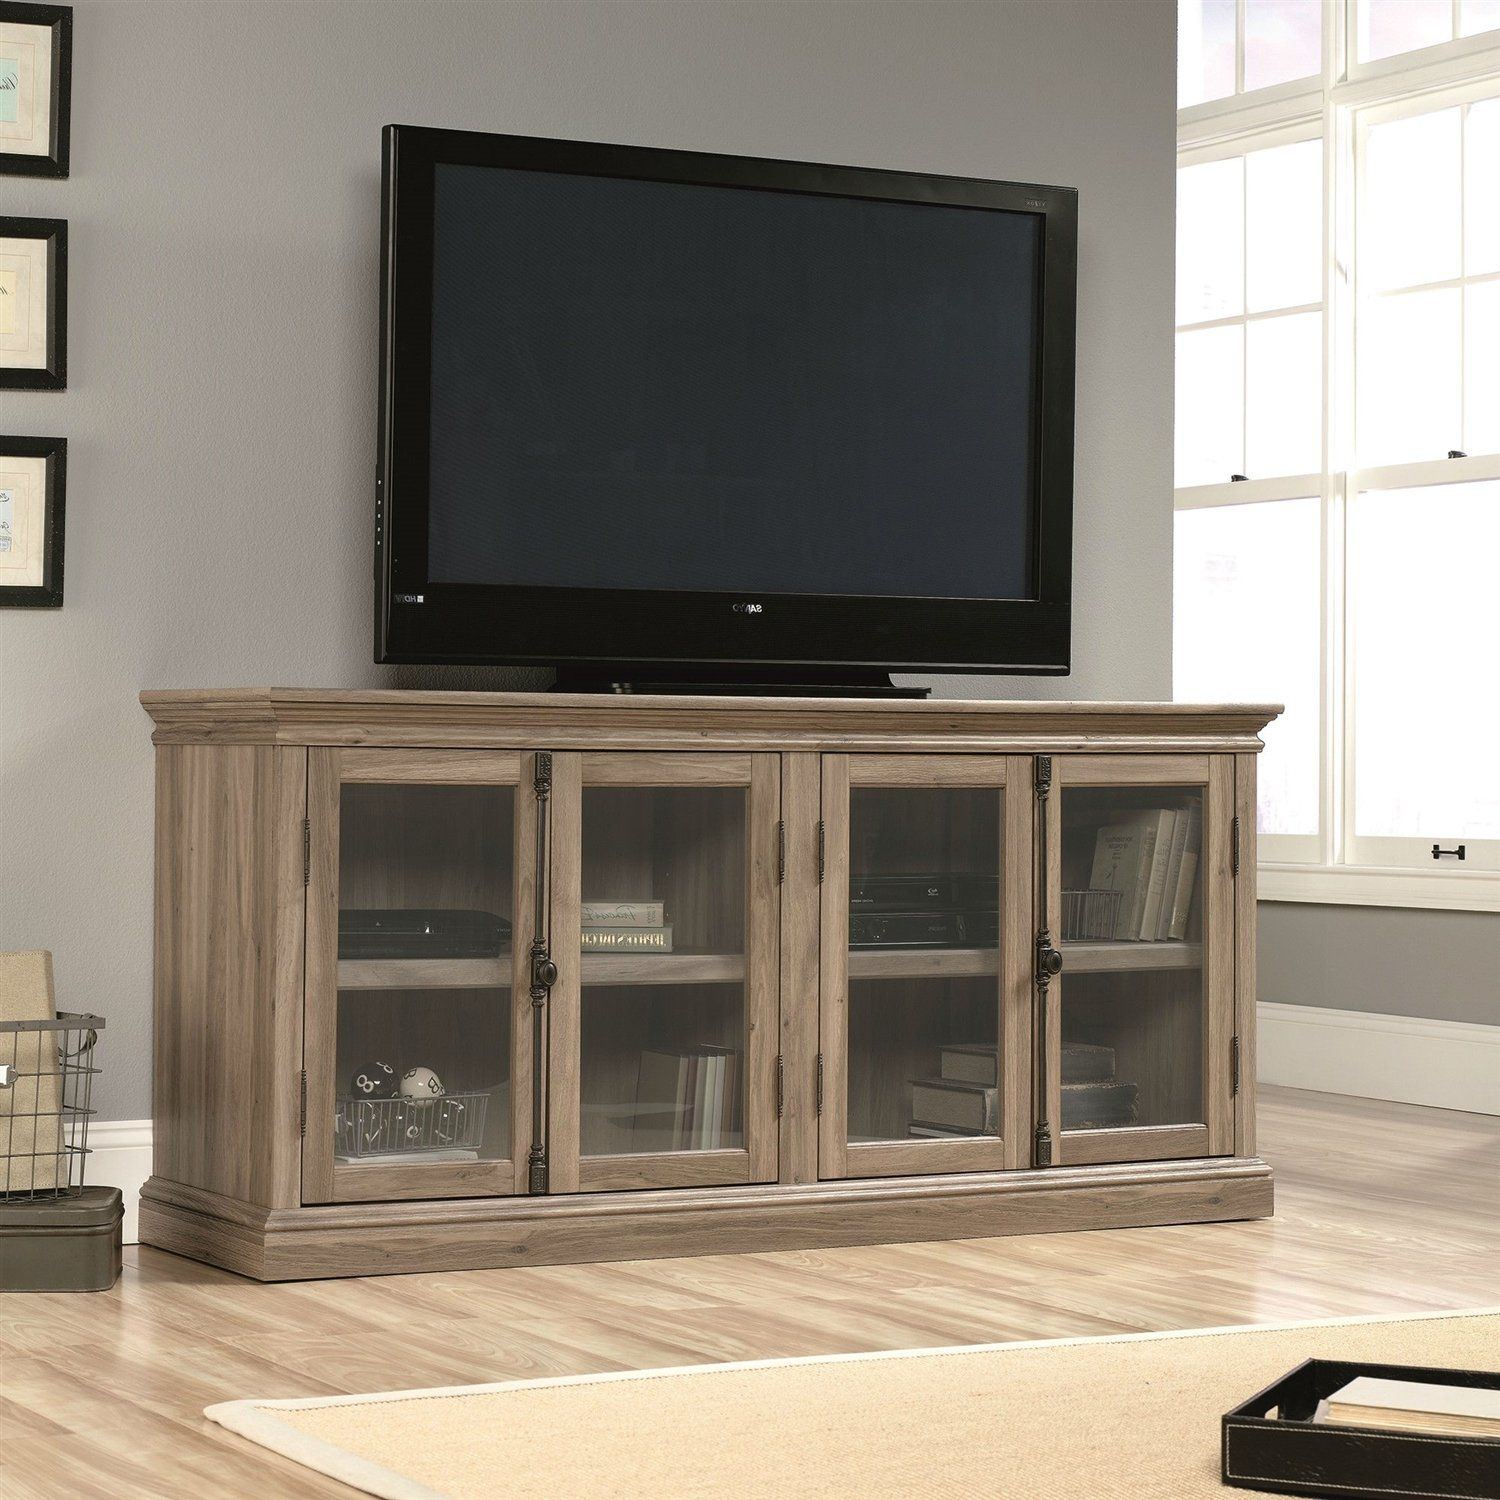 Salt Oak Wood Finish Tv Stand With Tempered Gl Doors Fits Up To 80 Inch